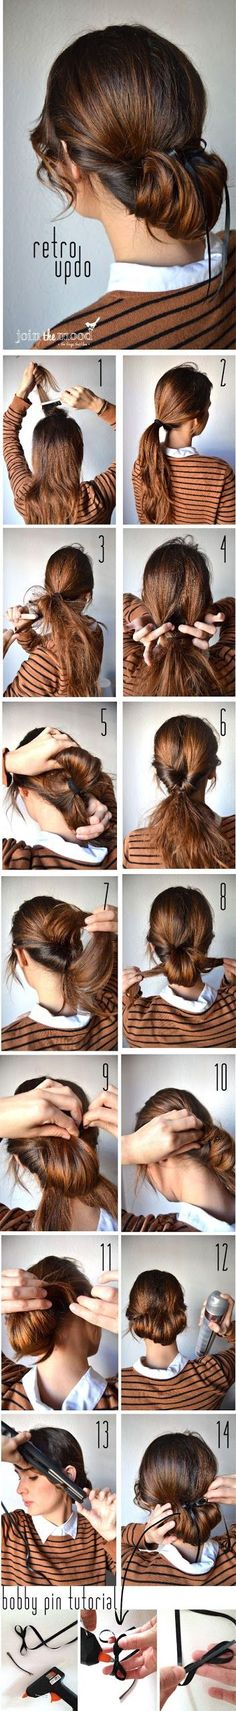 Go for the retro hair style in a classic time of year. A full hair tutorial for the style you want.